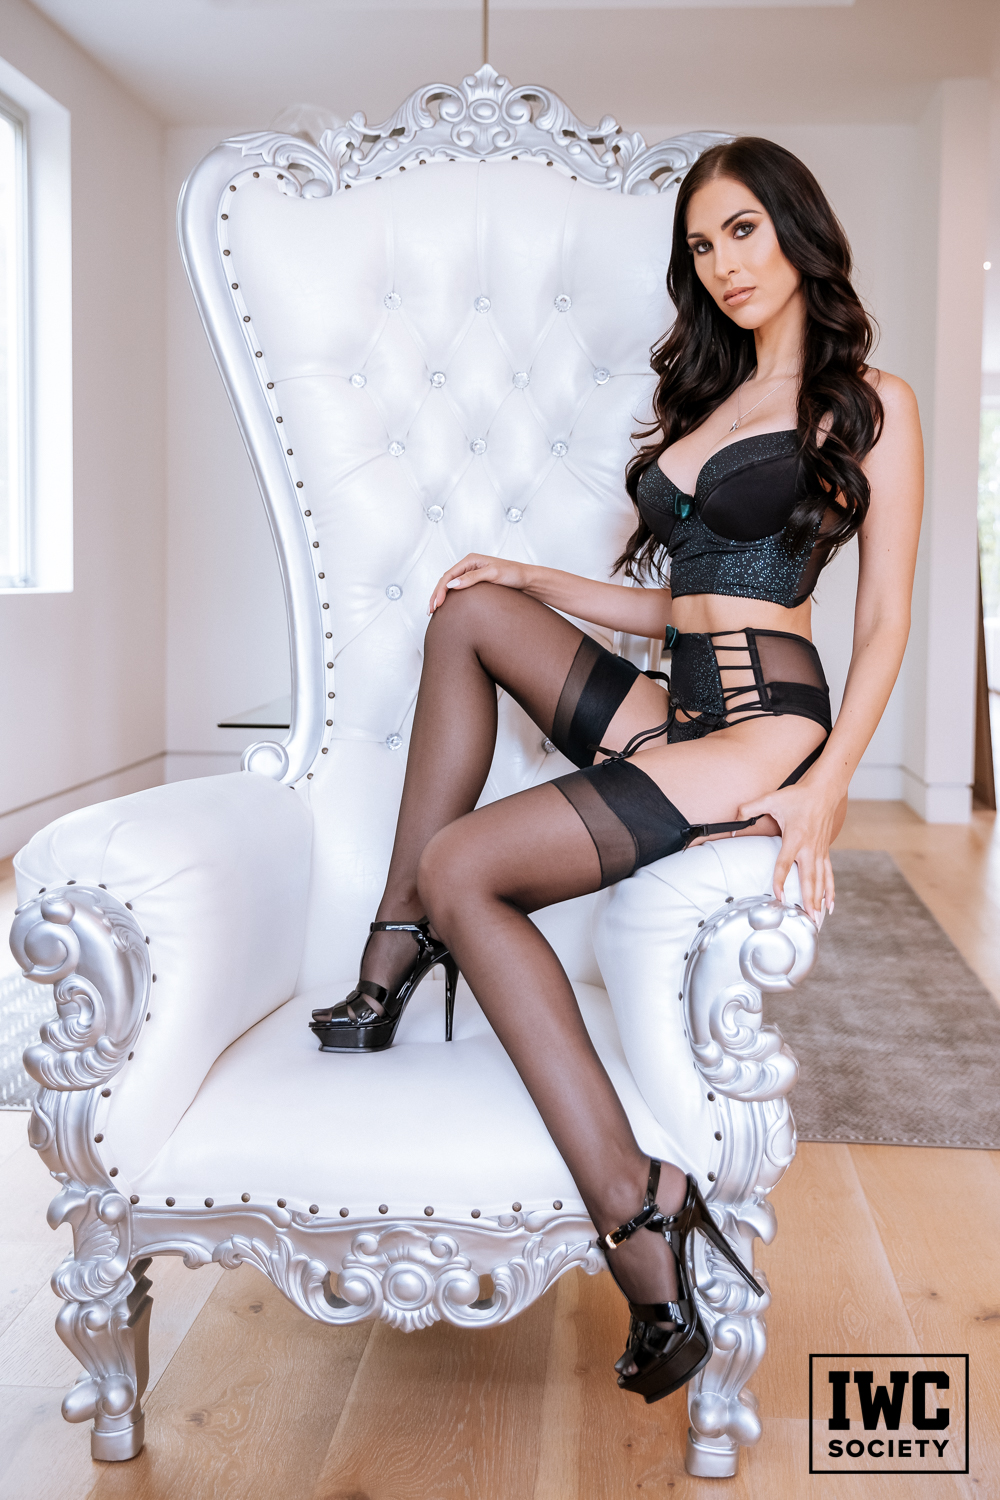 Princess Ashley perched on throne in black lingerie